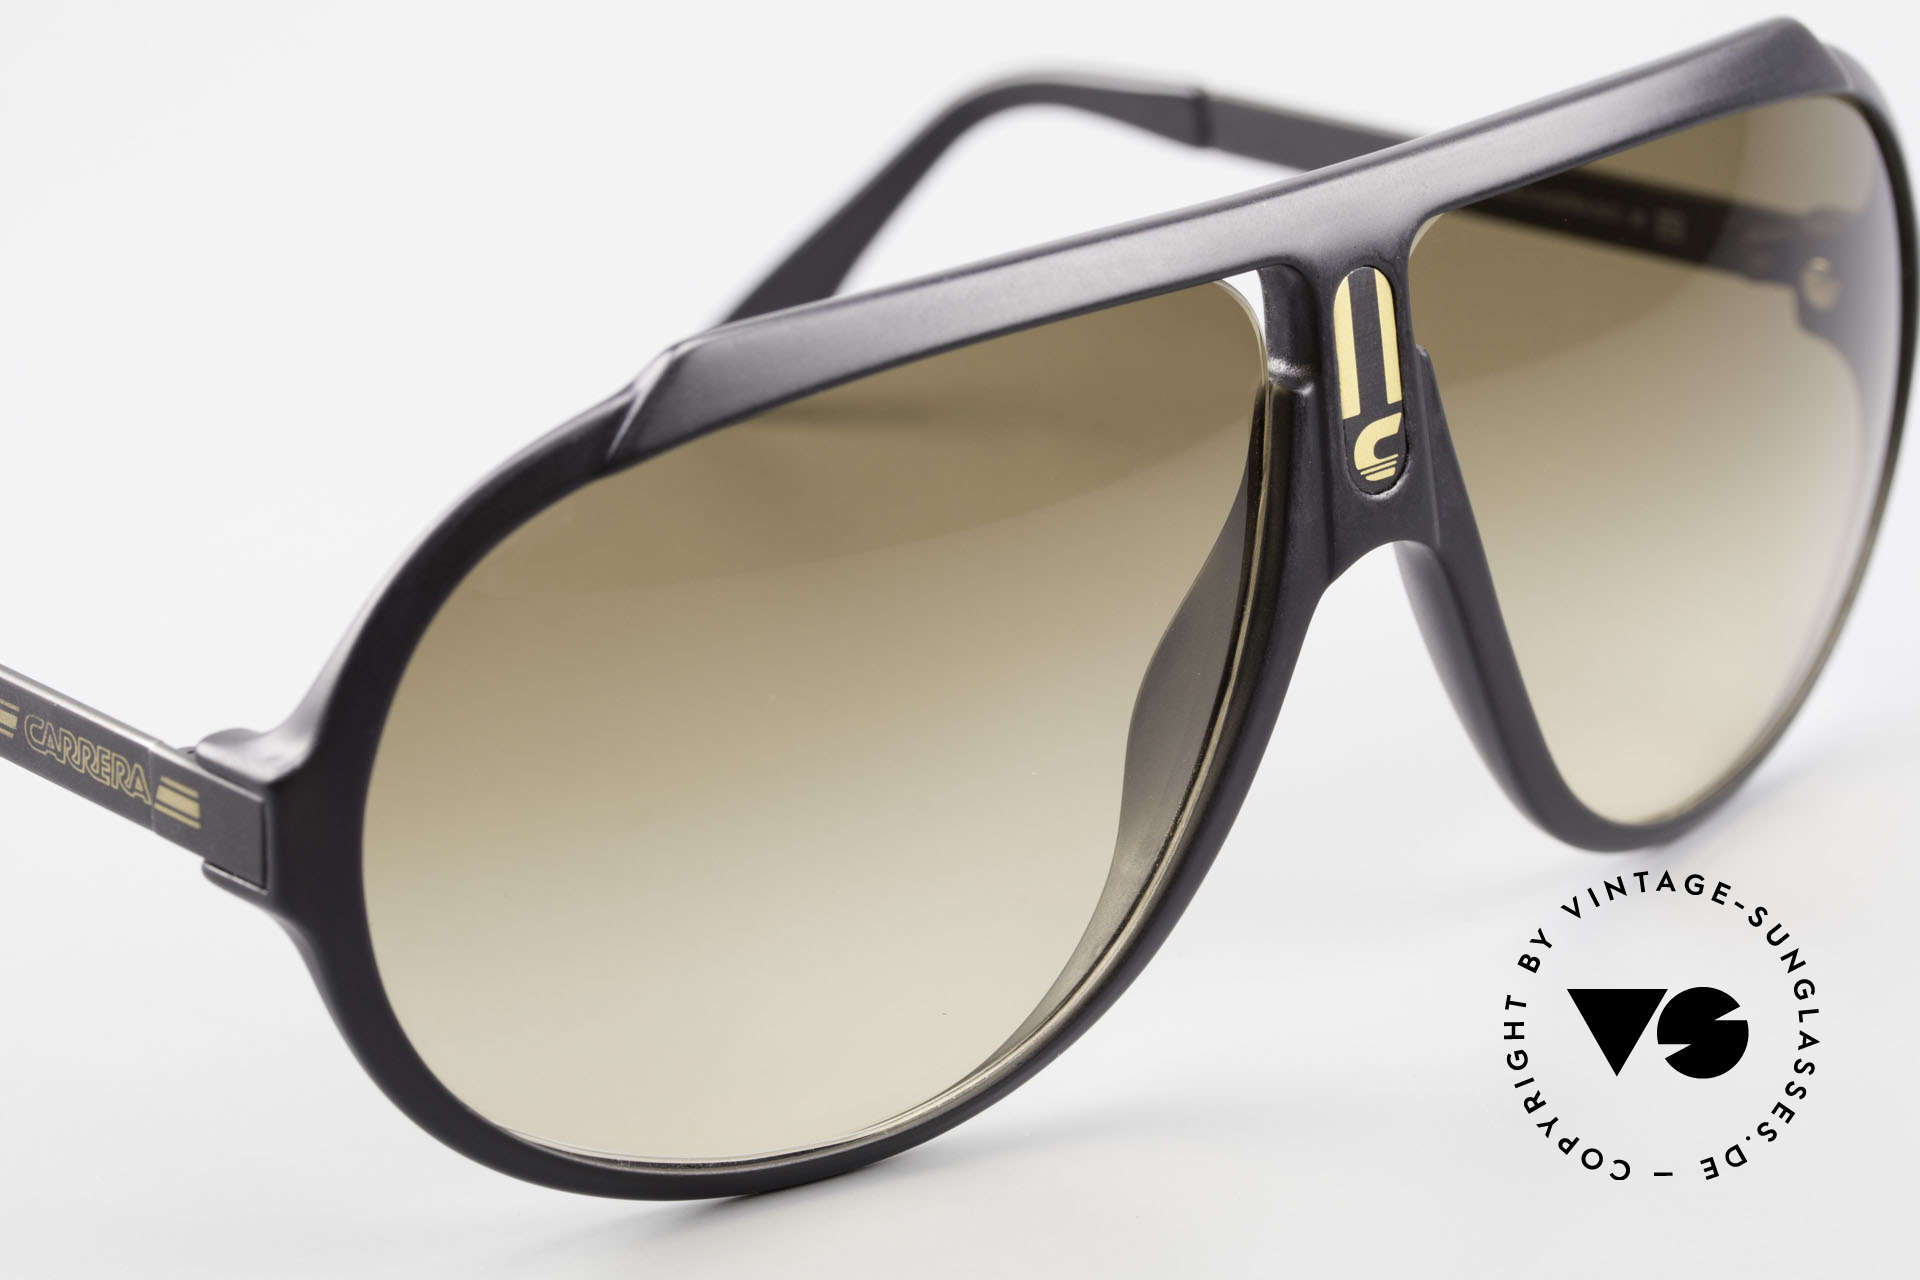 Carrera 5512 Most Wanted Carrera 5512, unworn, color code 90 = the MOST WANTED Carrera 5512, Made for Men